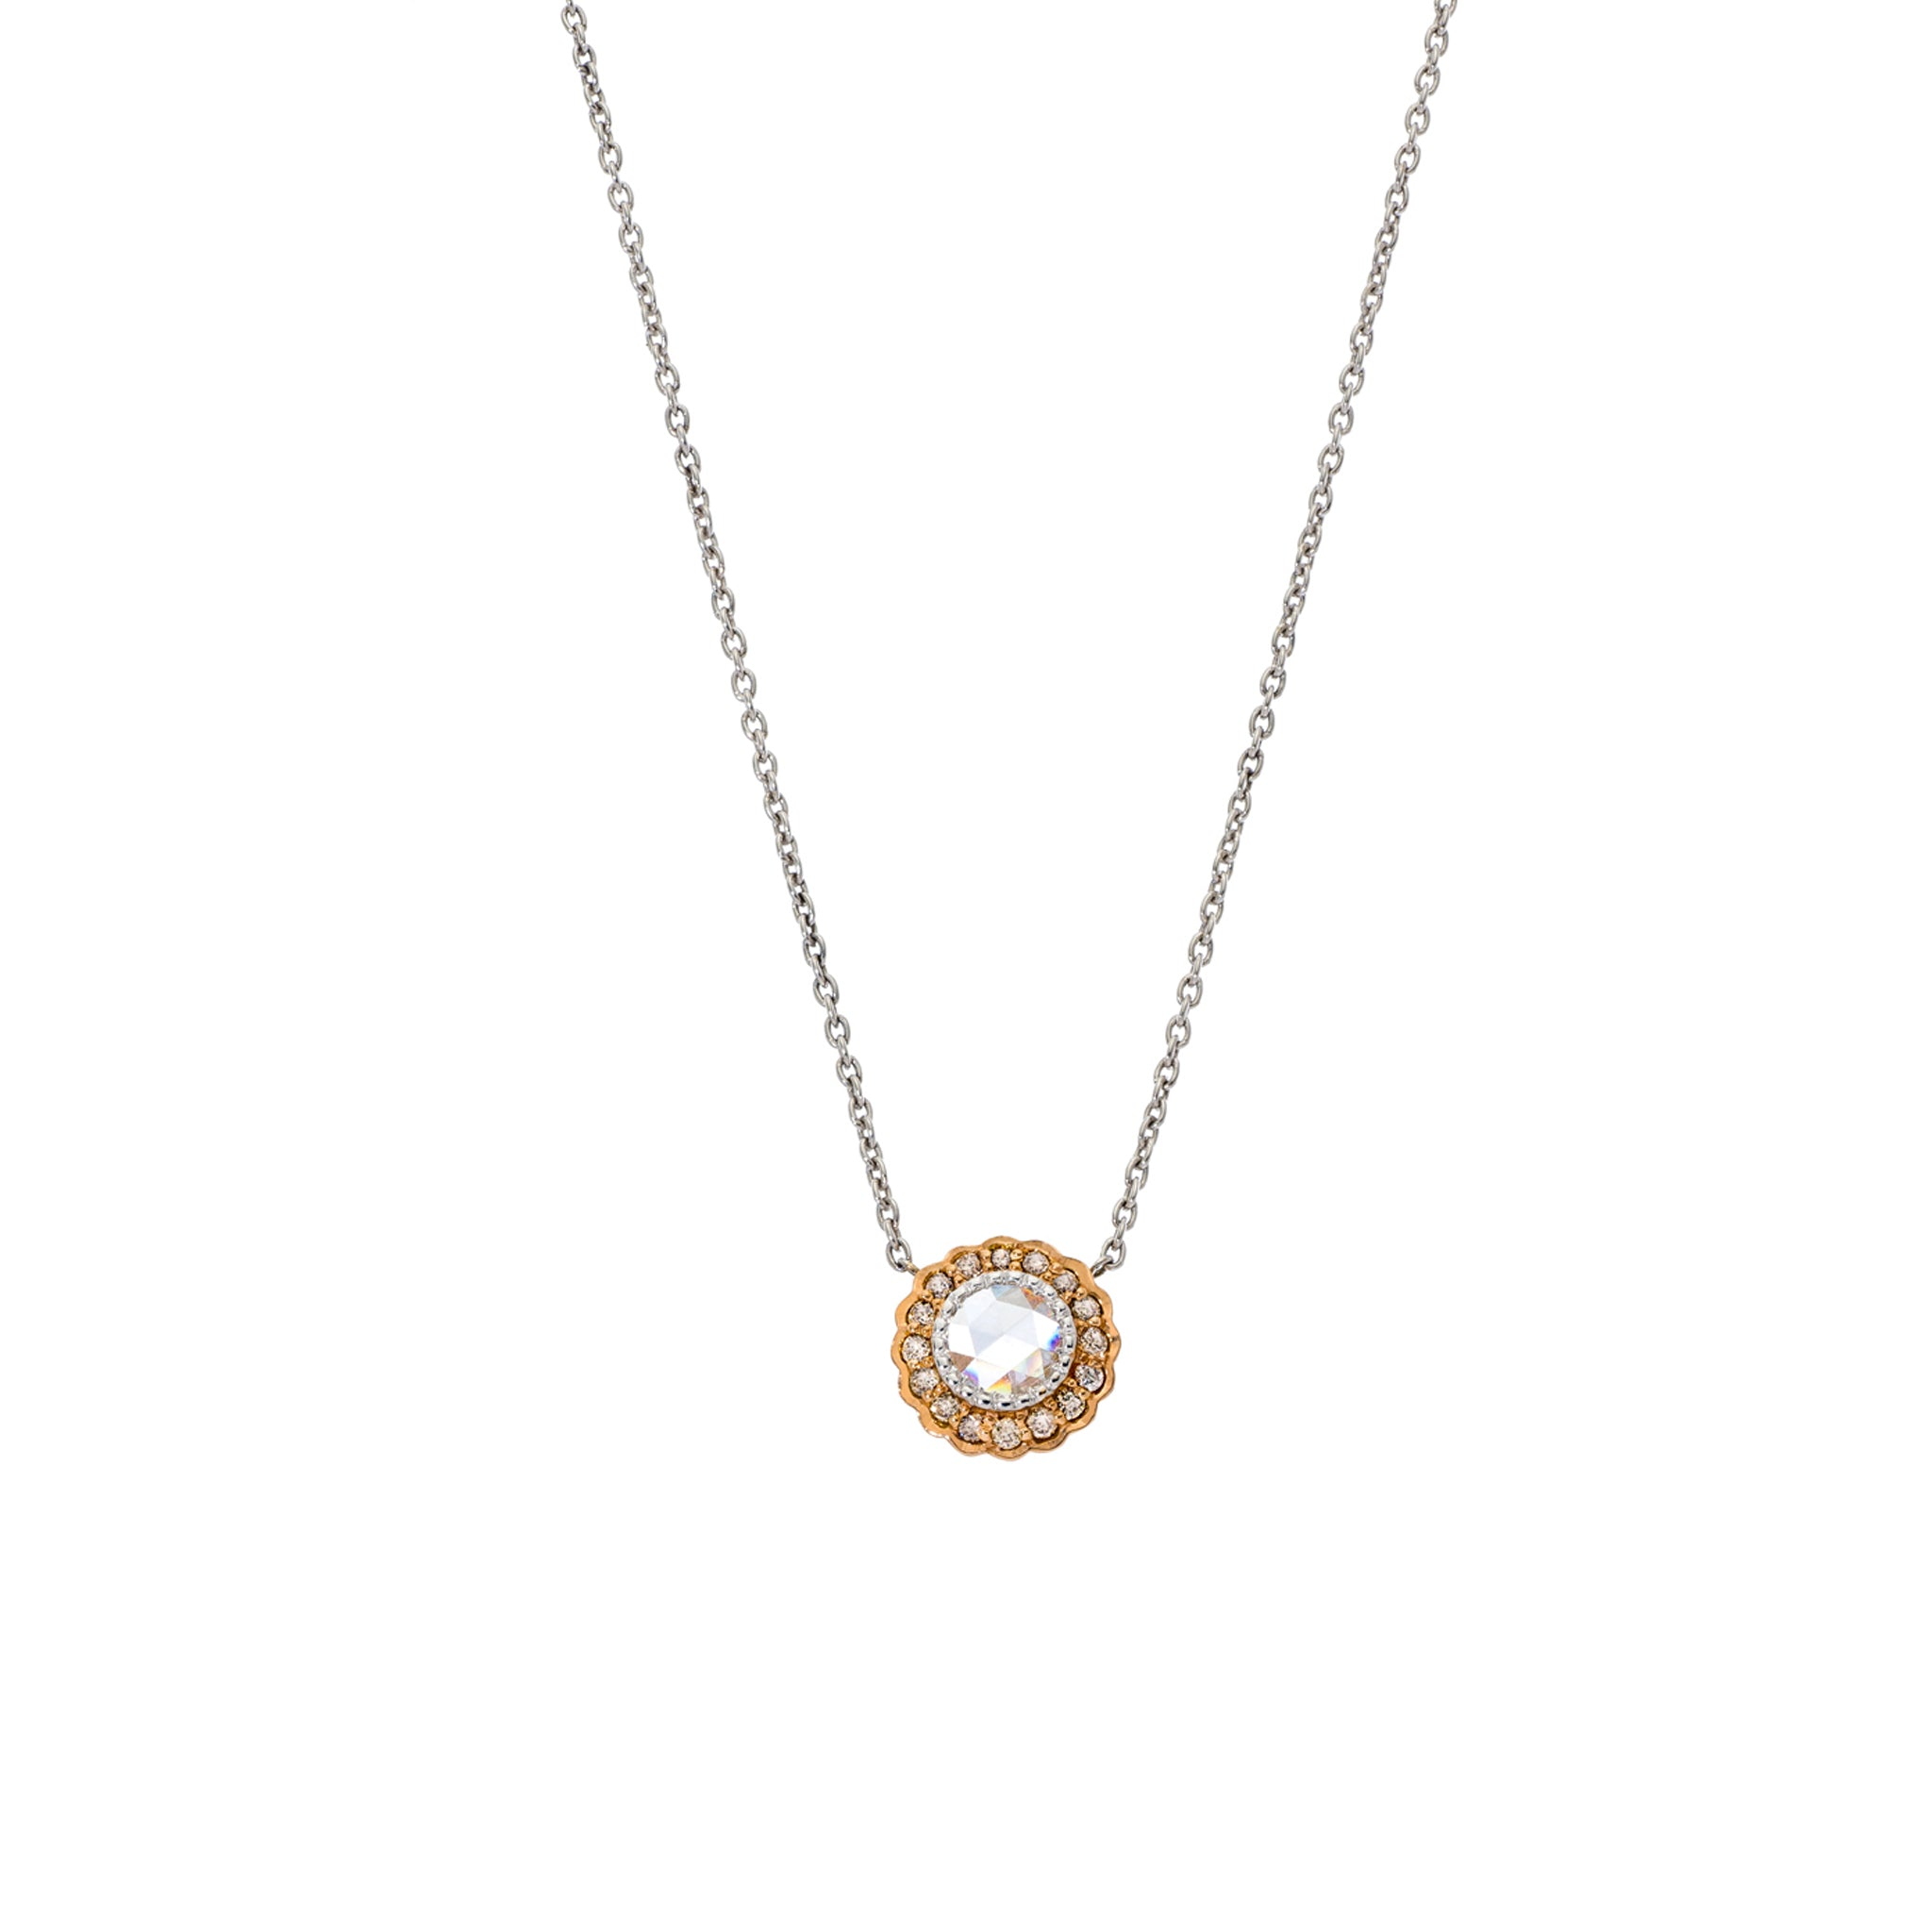 The True Romance Necklace 18K Rose Gold